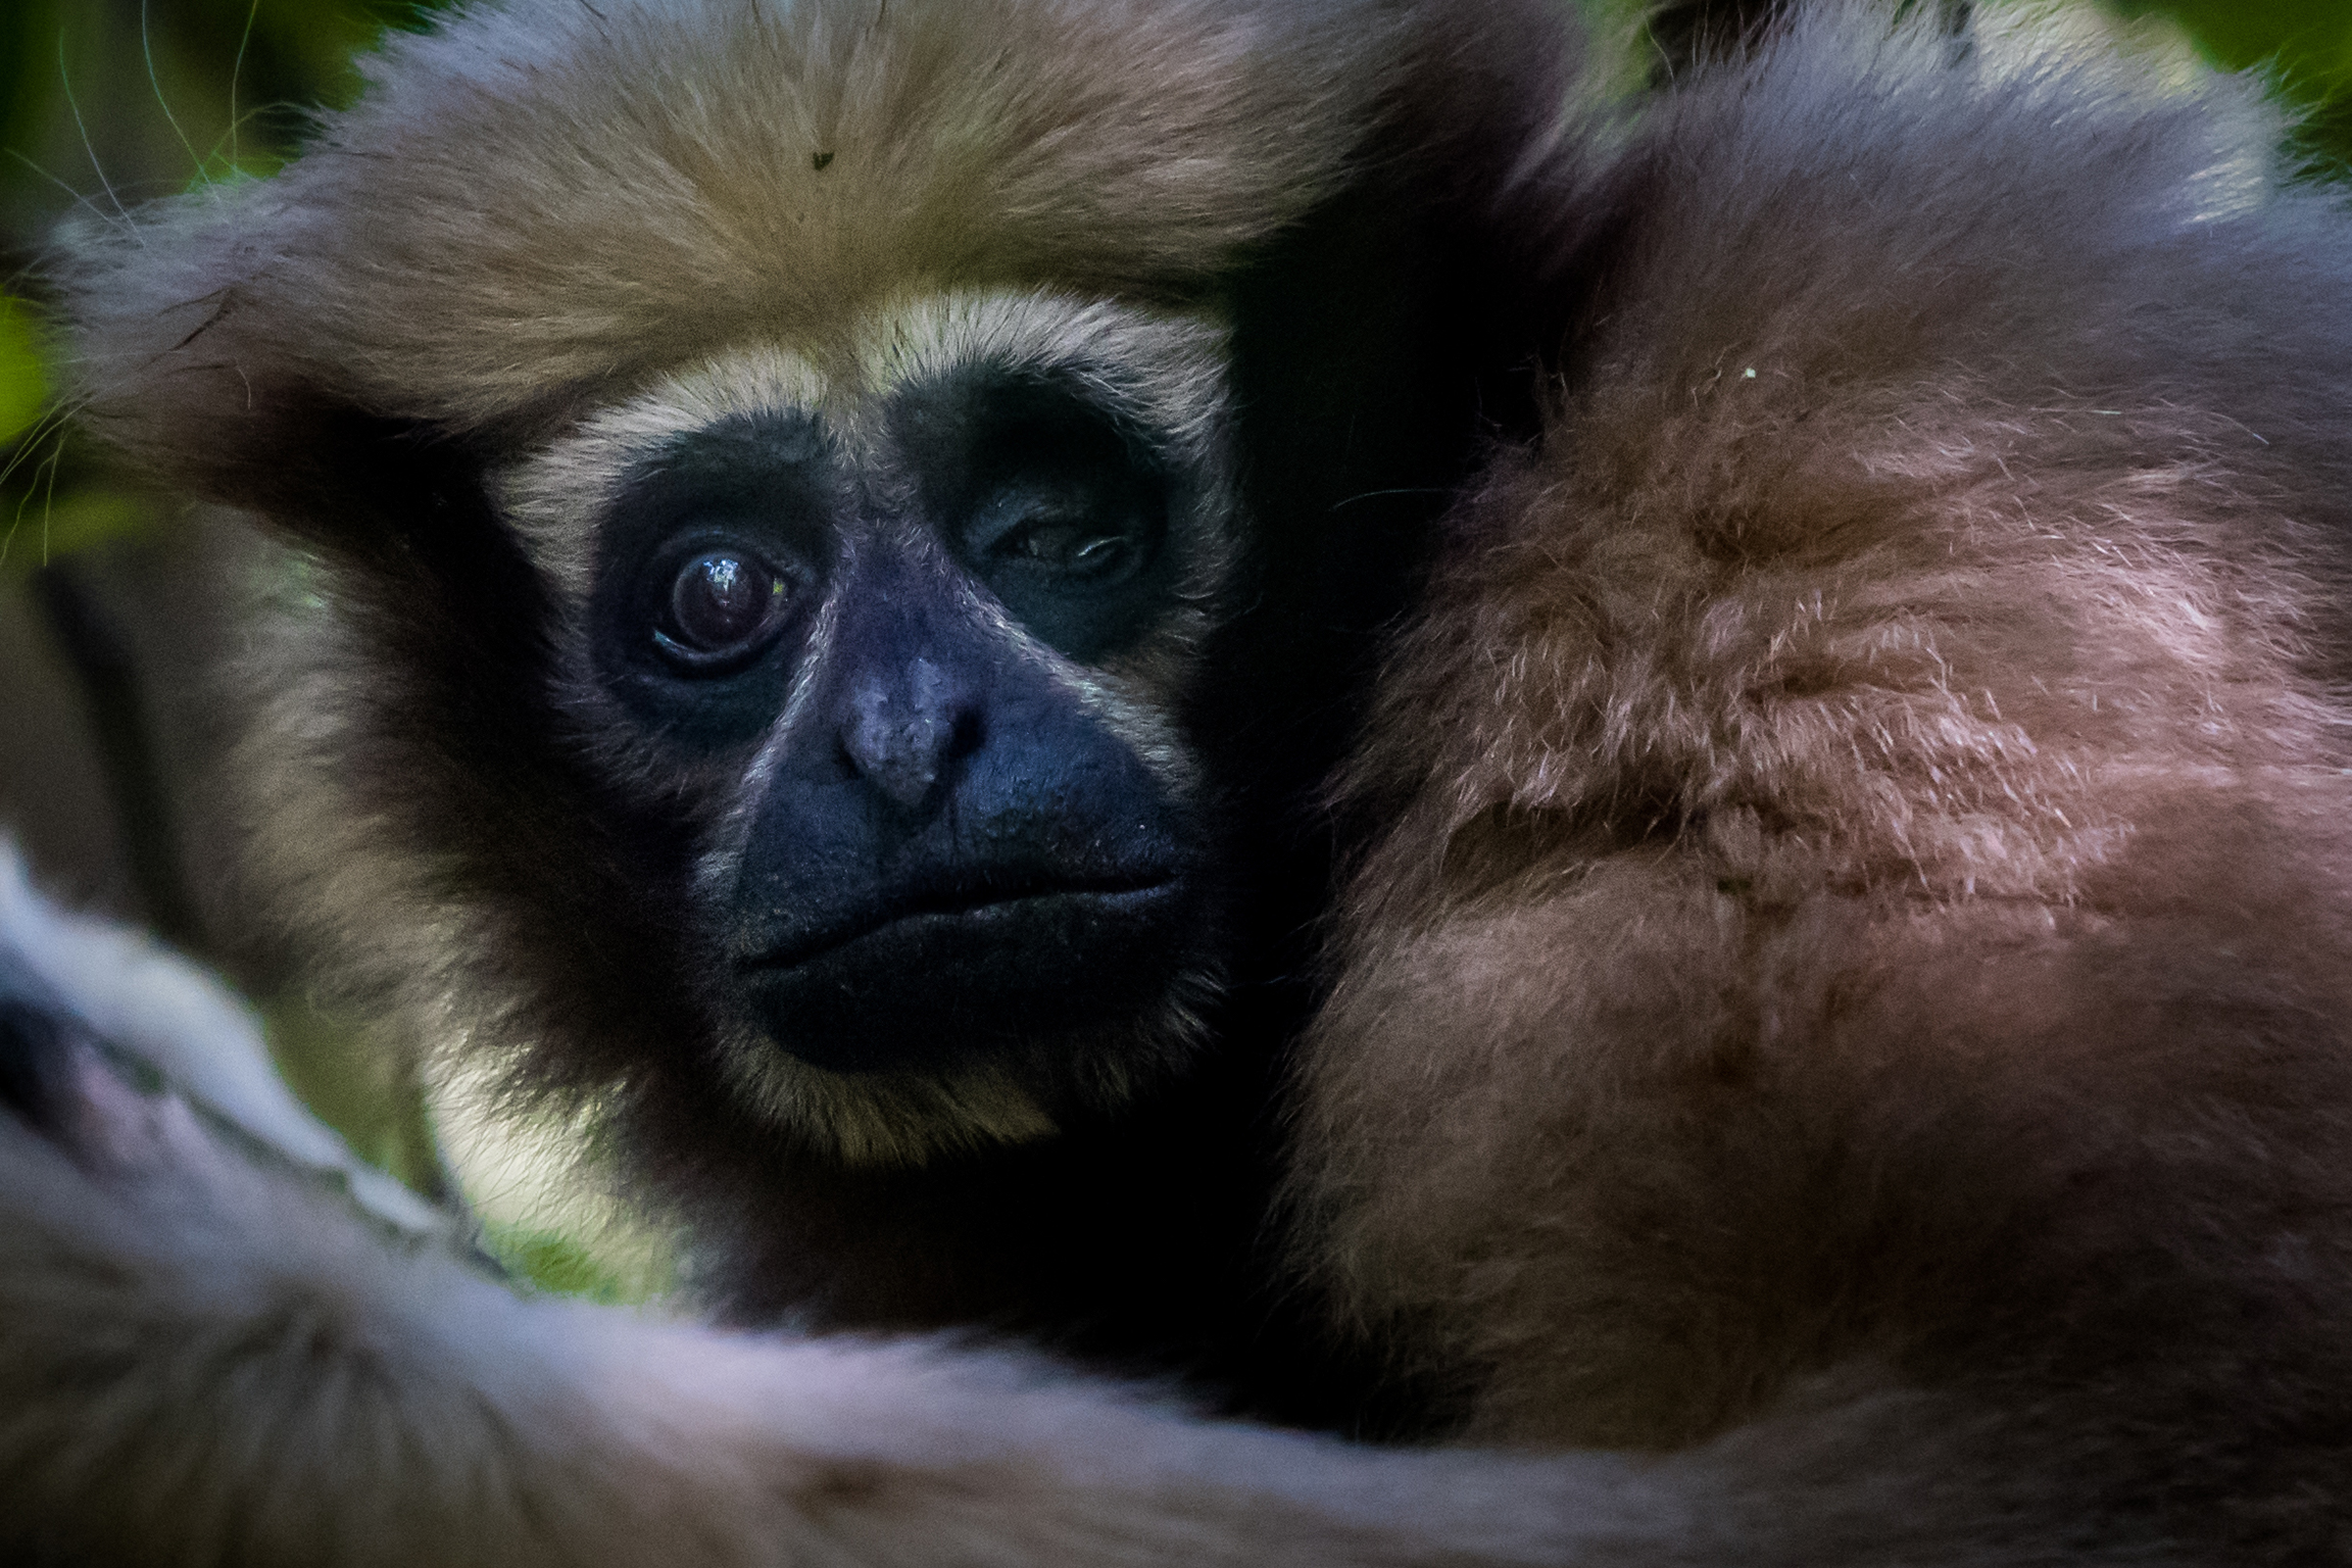 A female gibbon that the rangers have named Ama is nearing the end of her life. With an injury to one eye, she moves more slowly through the canopy than her mate Agong.